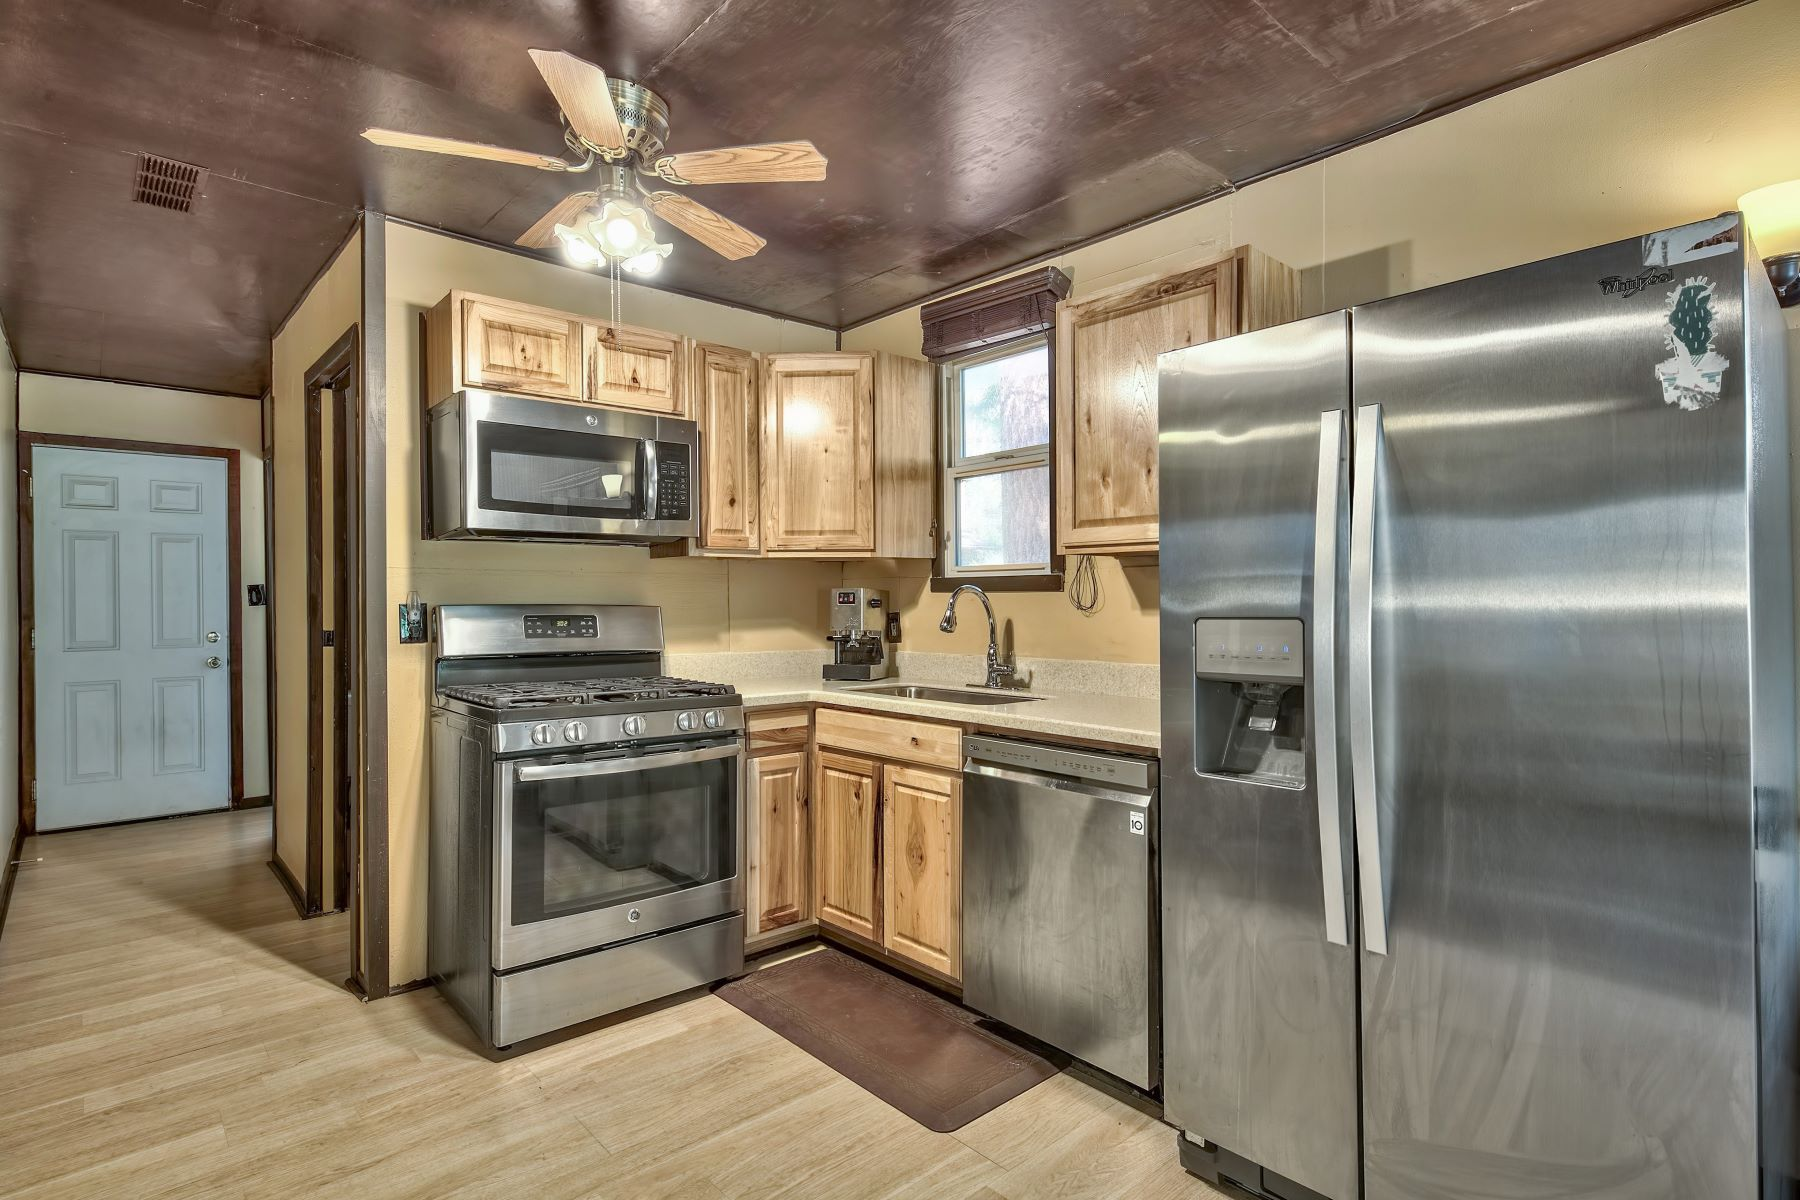 Additional photo for property listing at Charming Vintage Cabin At Stateline 1051 Chonokis Road South Lake Tahoe, California 96150 United States